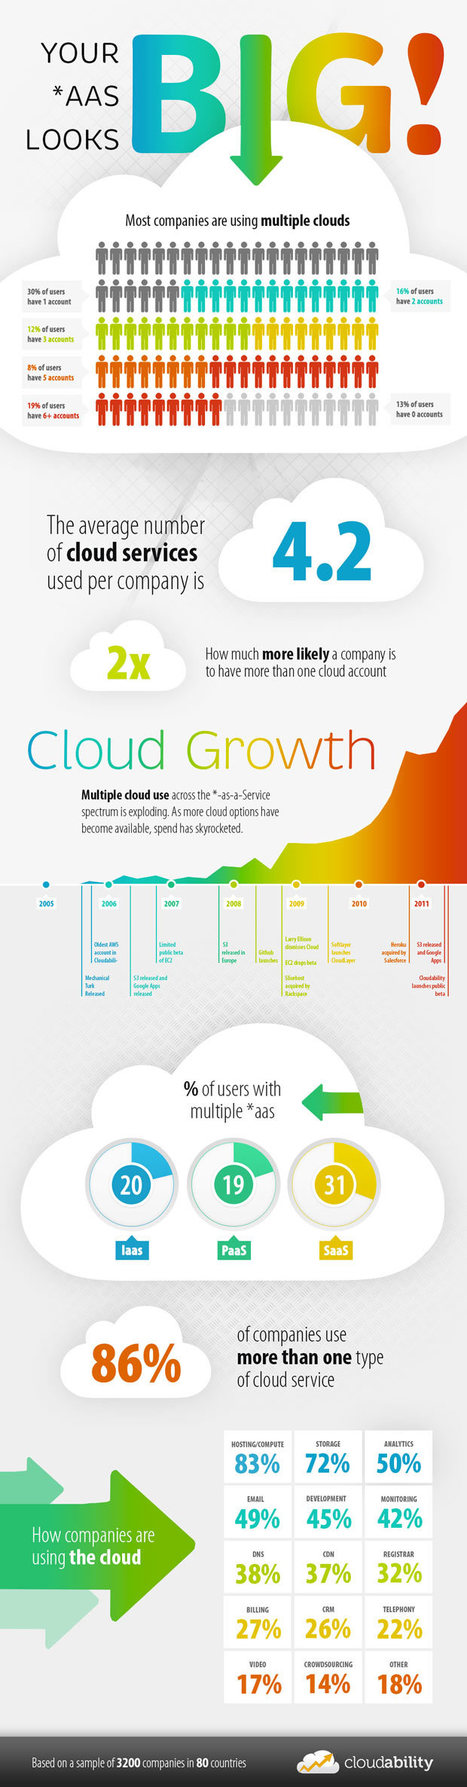 INFOGRAPHIC: Everything-as-a-Service (XaaS) Trends | The Cloud Infographic | The business value of technology | Scoop.it